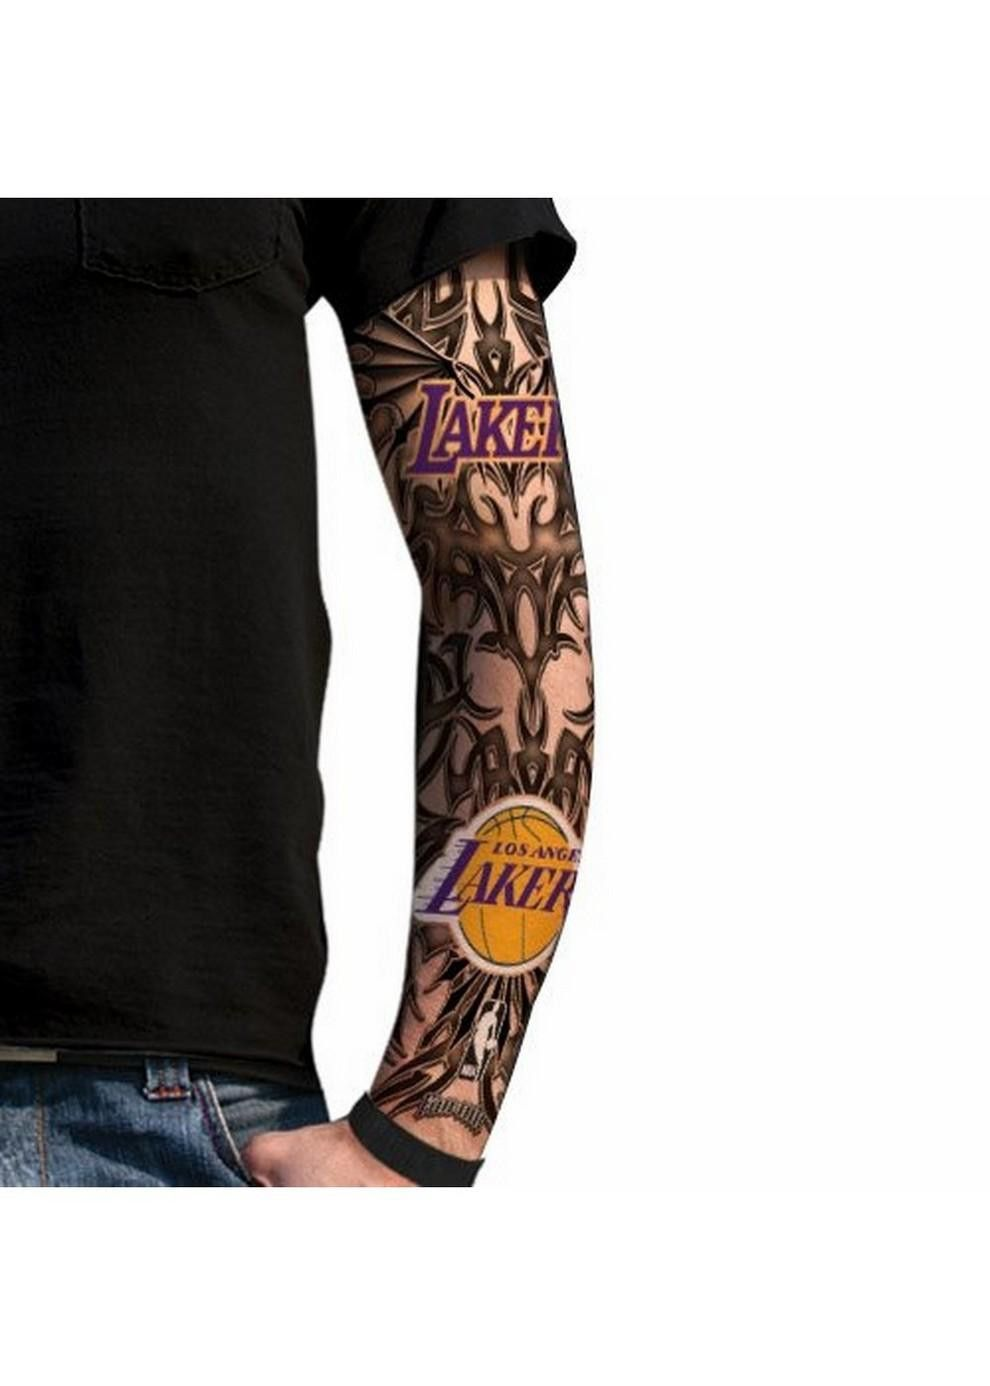 Fans ink tattoo sleeve los angeles lakers for light for La lakers tattoo